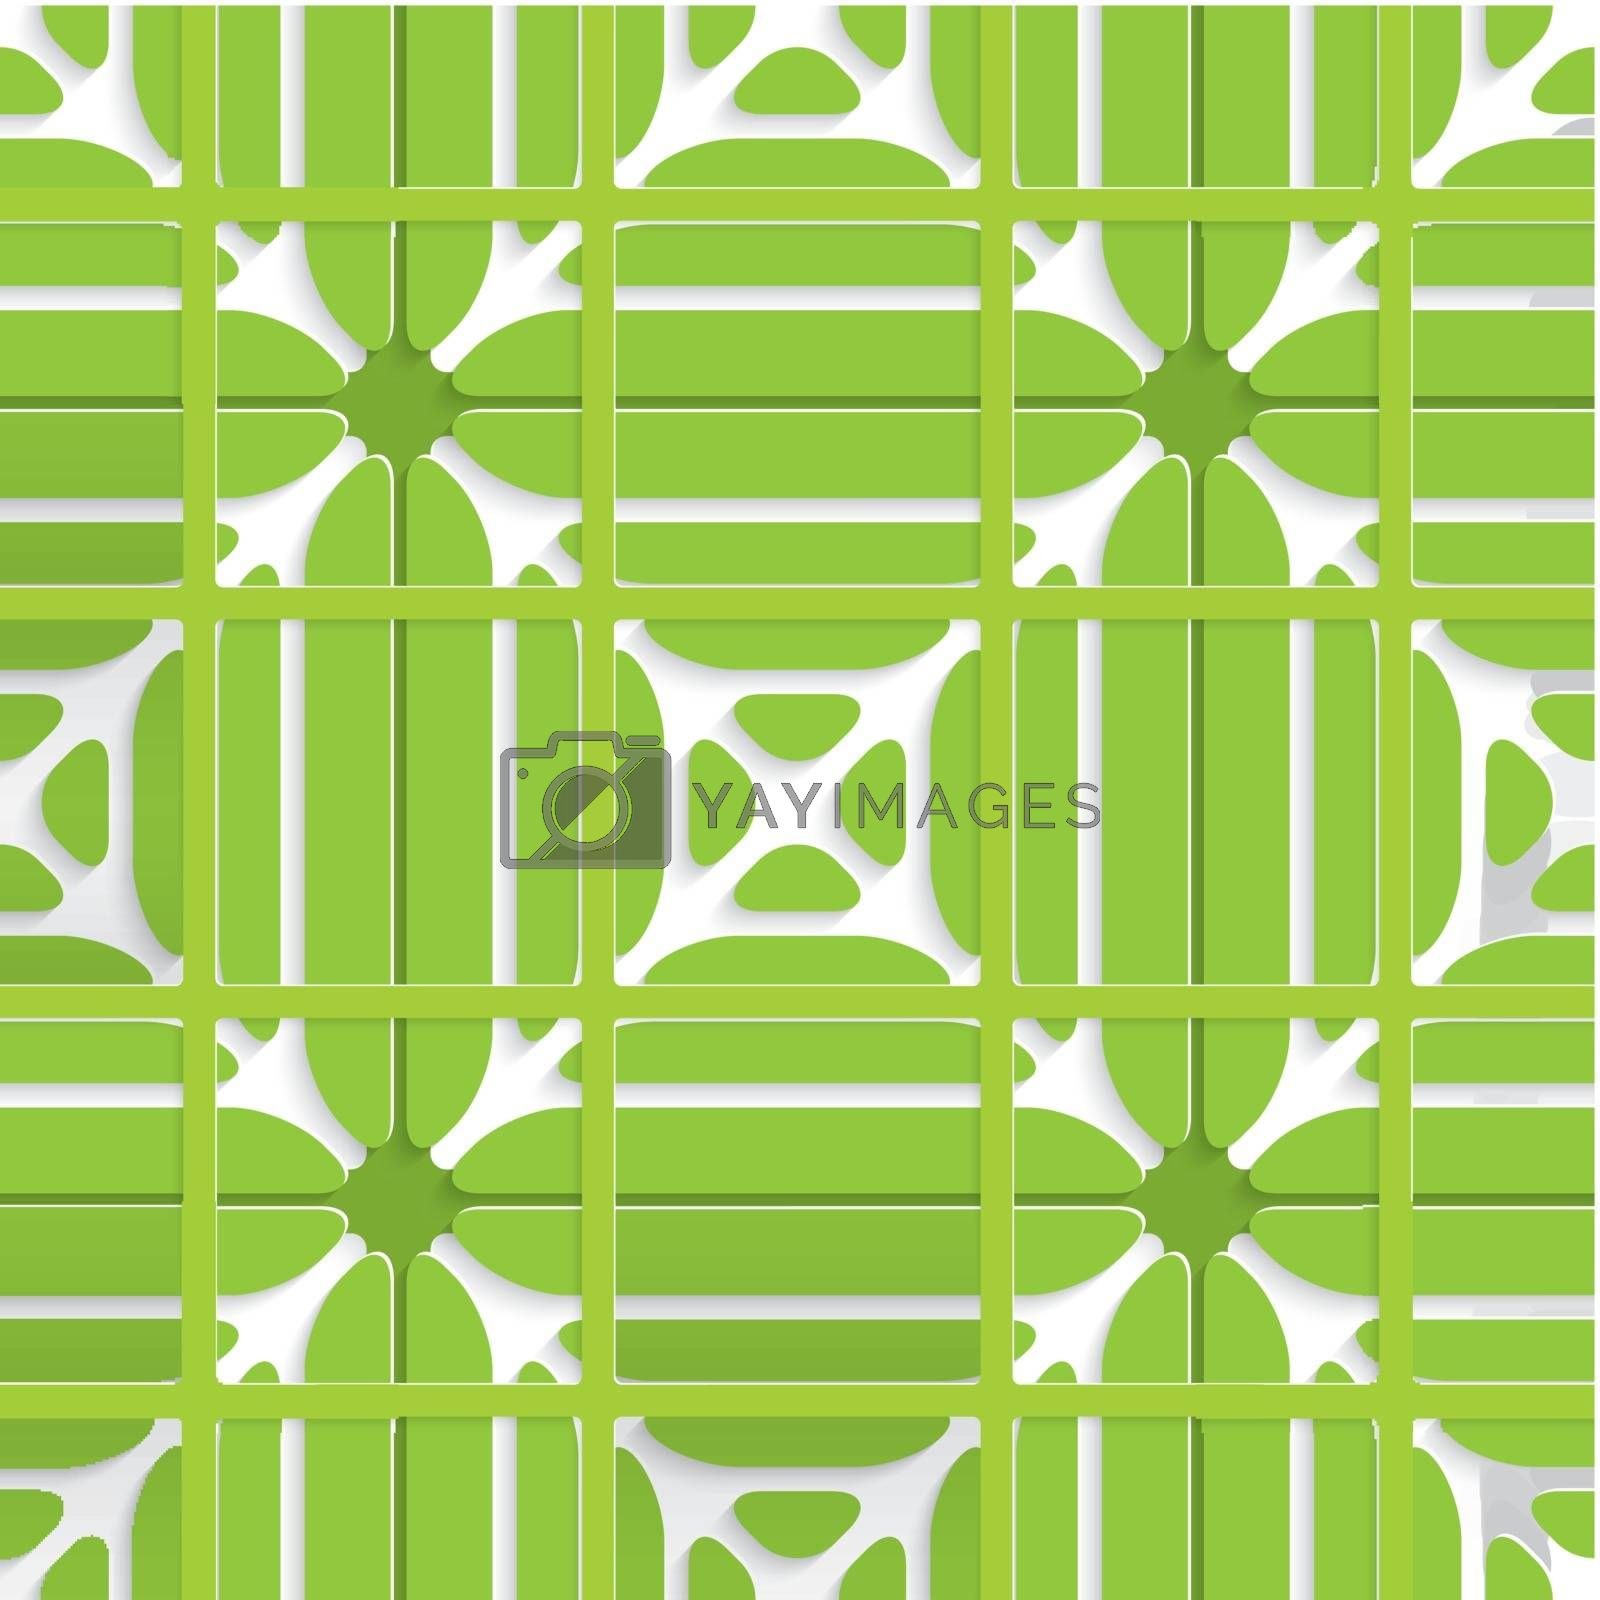 Green layered ornament seamless with grid by Zebra-Finch